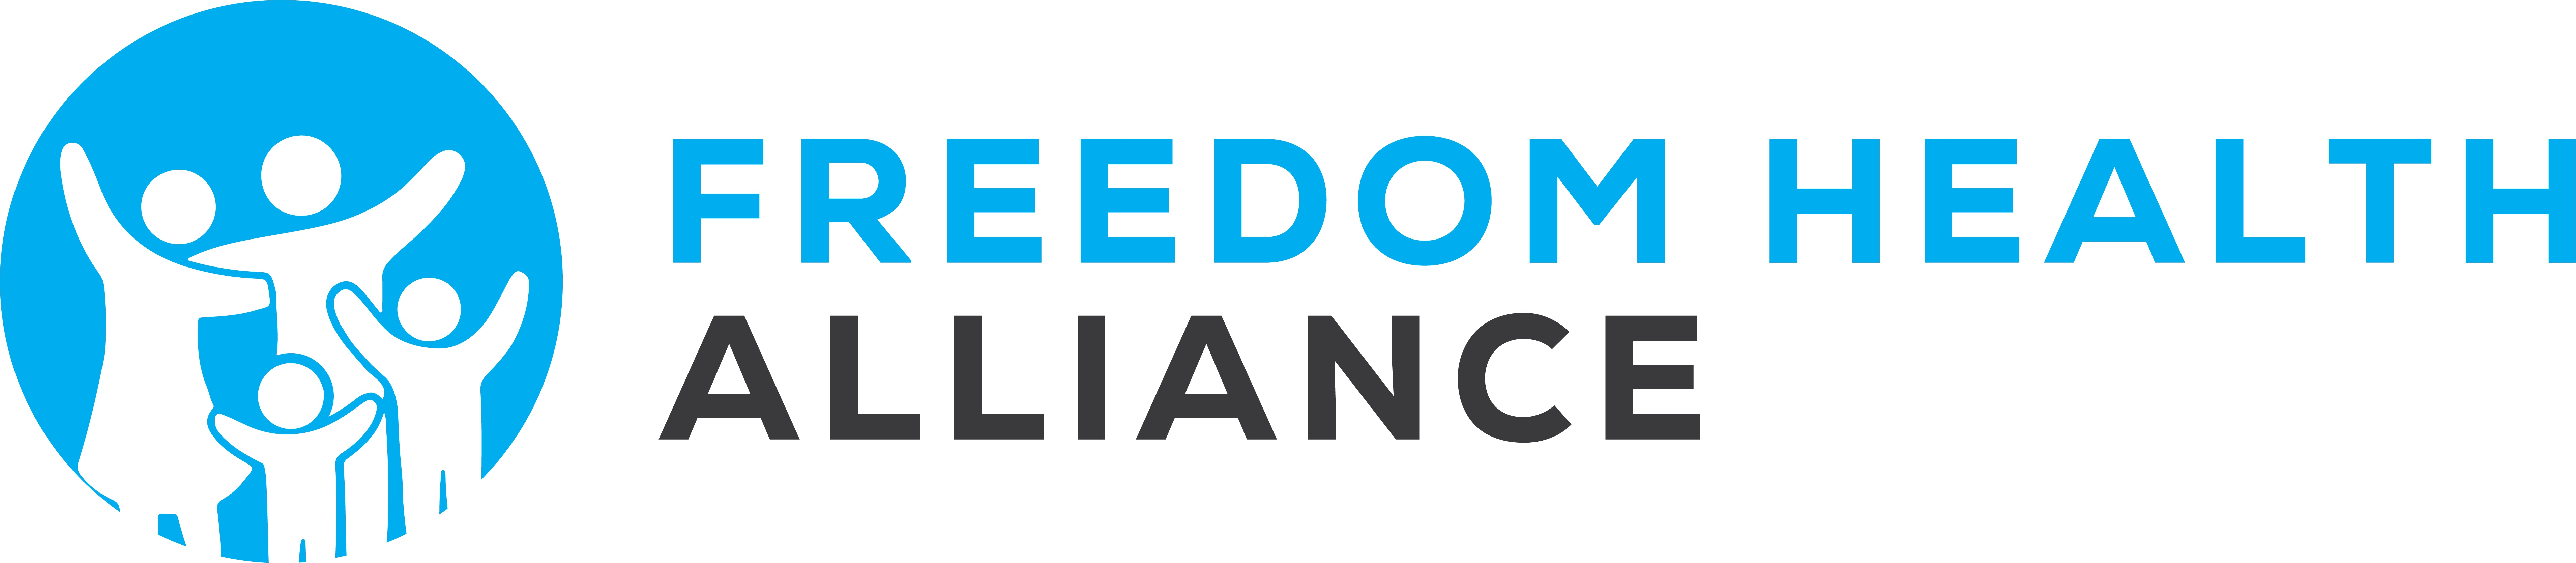 Freedom Health Alliance Encourages Positive Lifestyle Changes for Better Protection Against Diseases